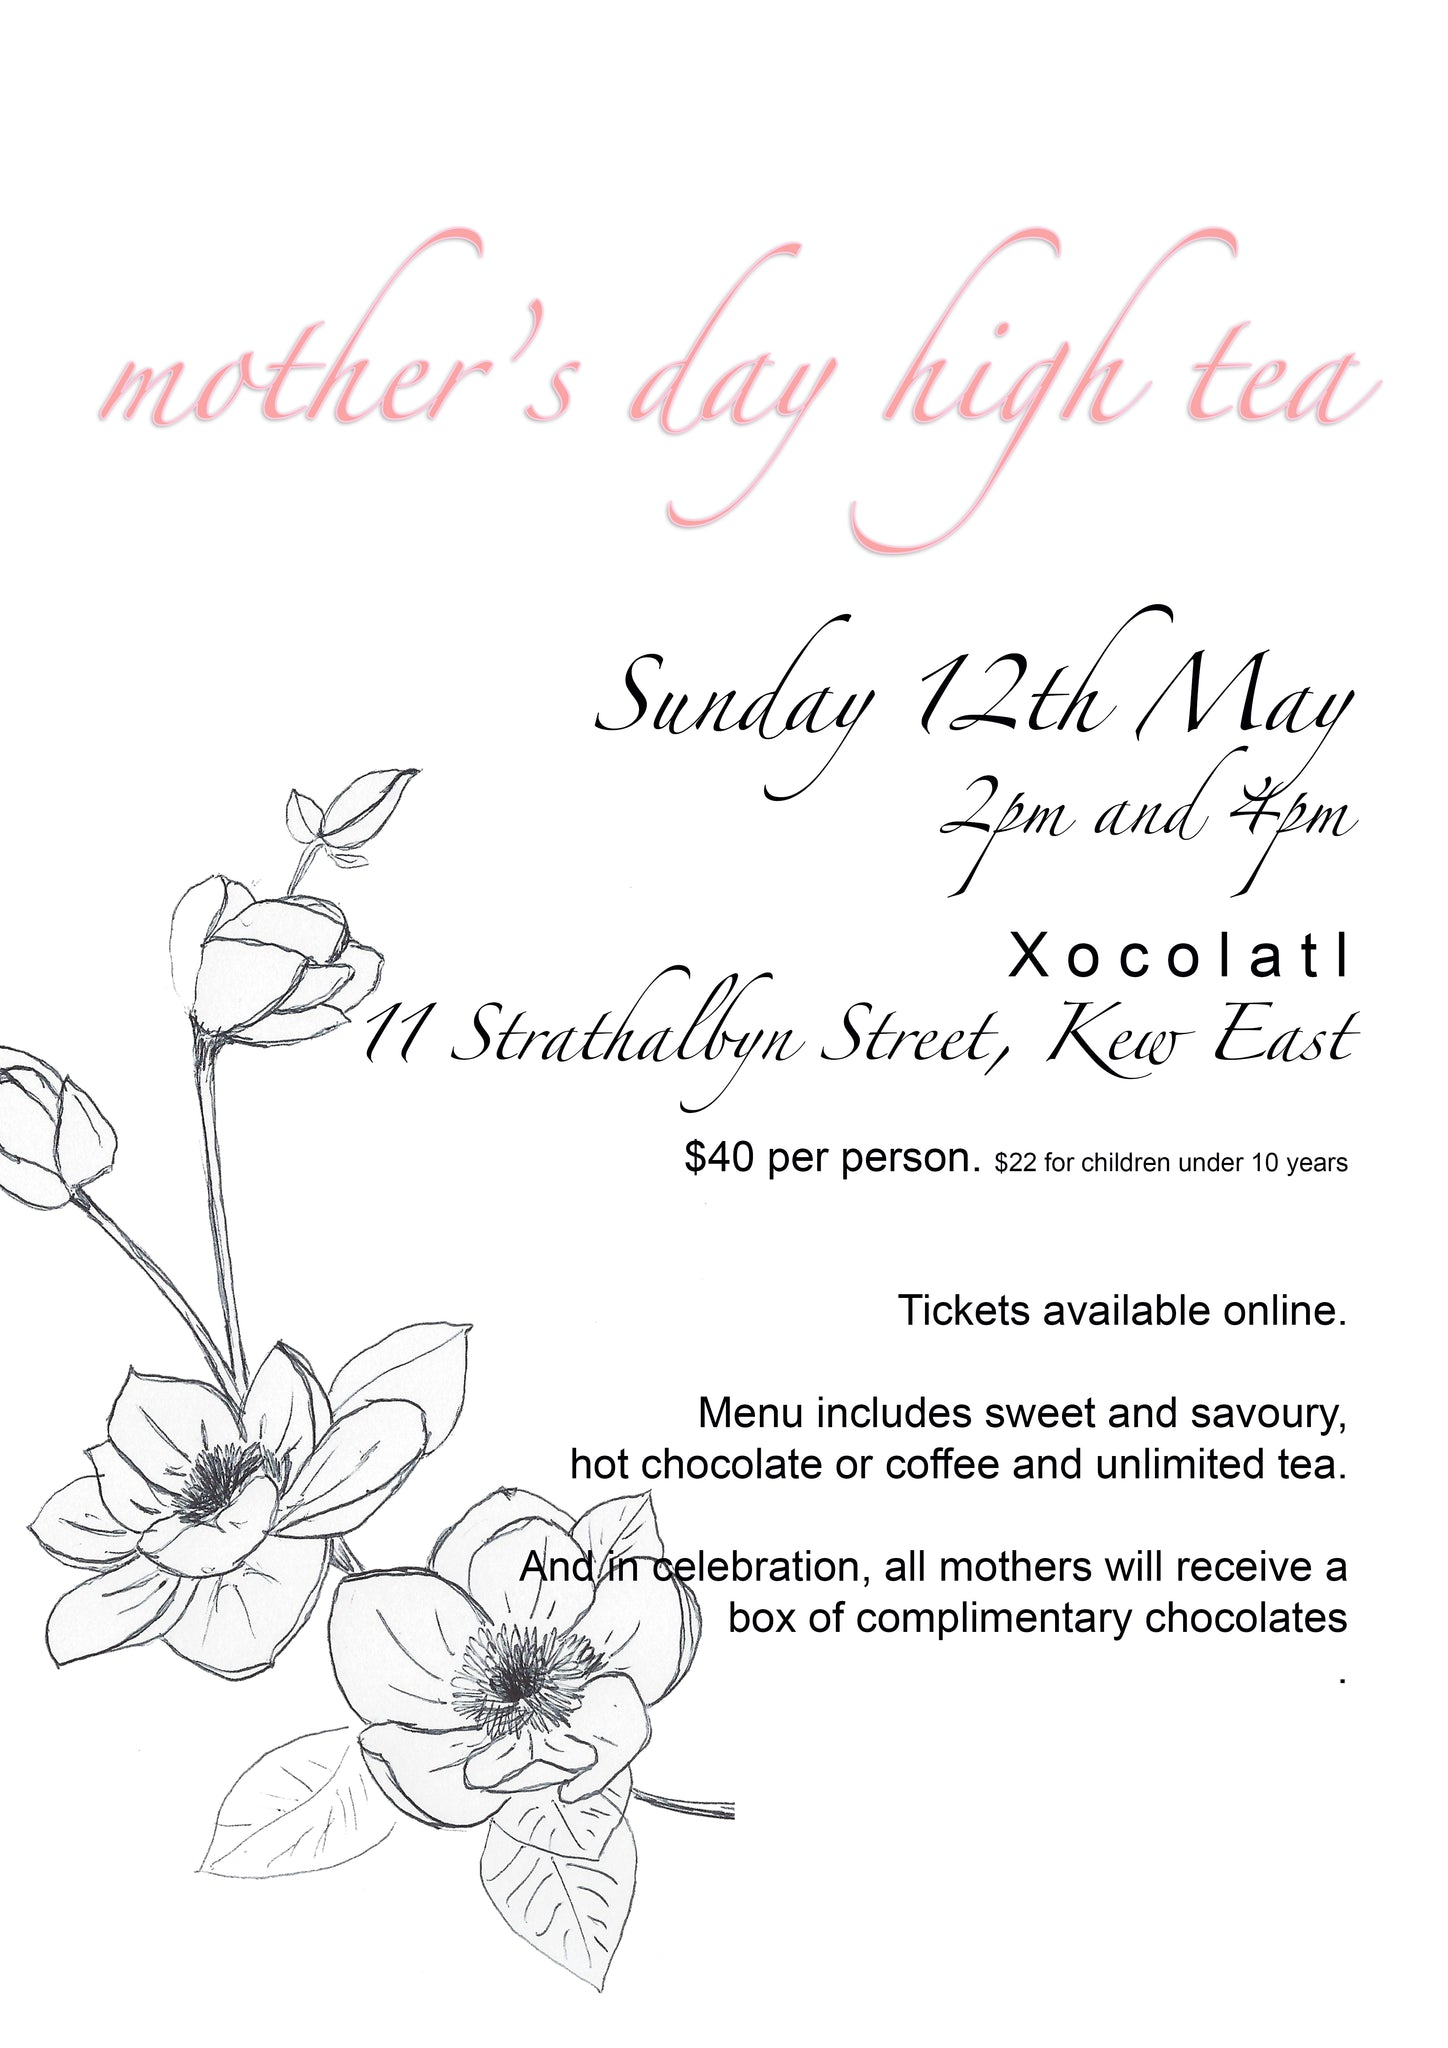 KIDS TICKET - Mother's Day High Tea